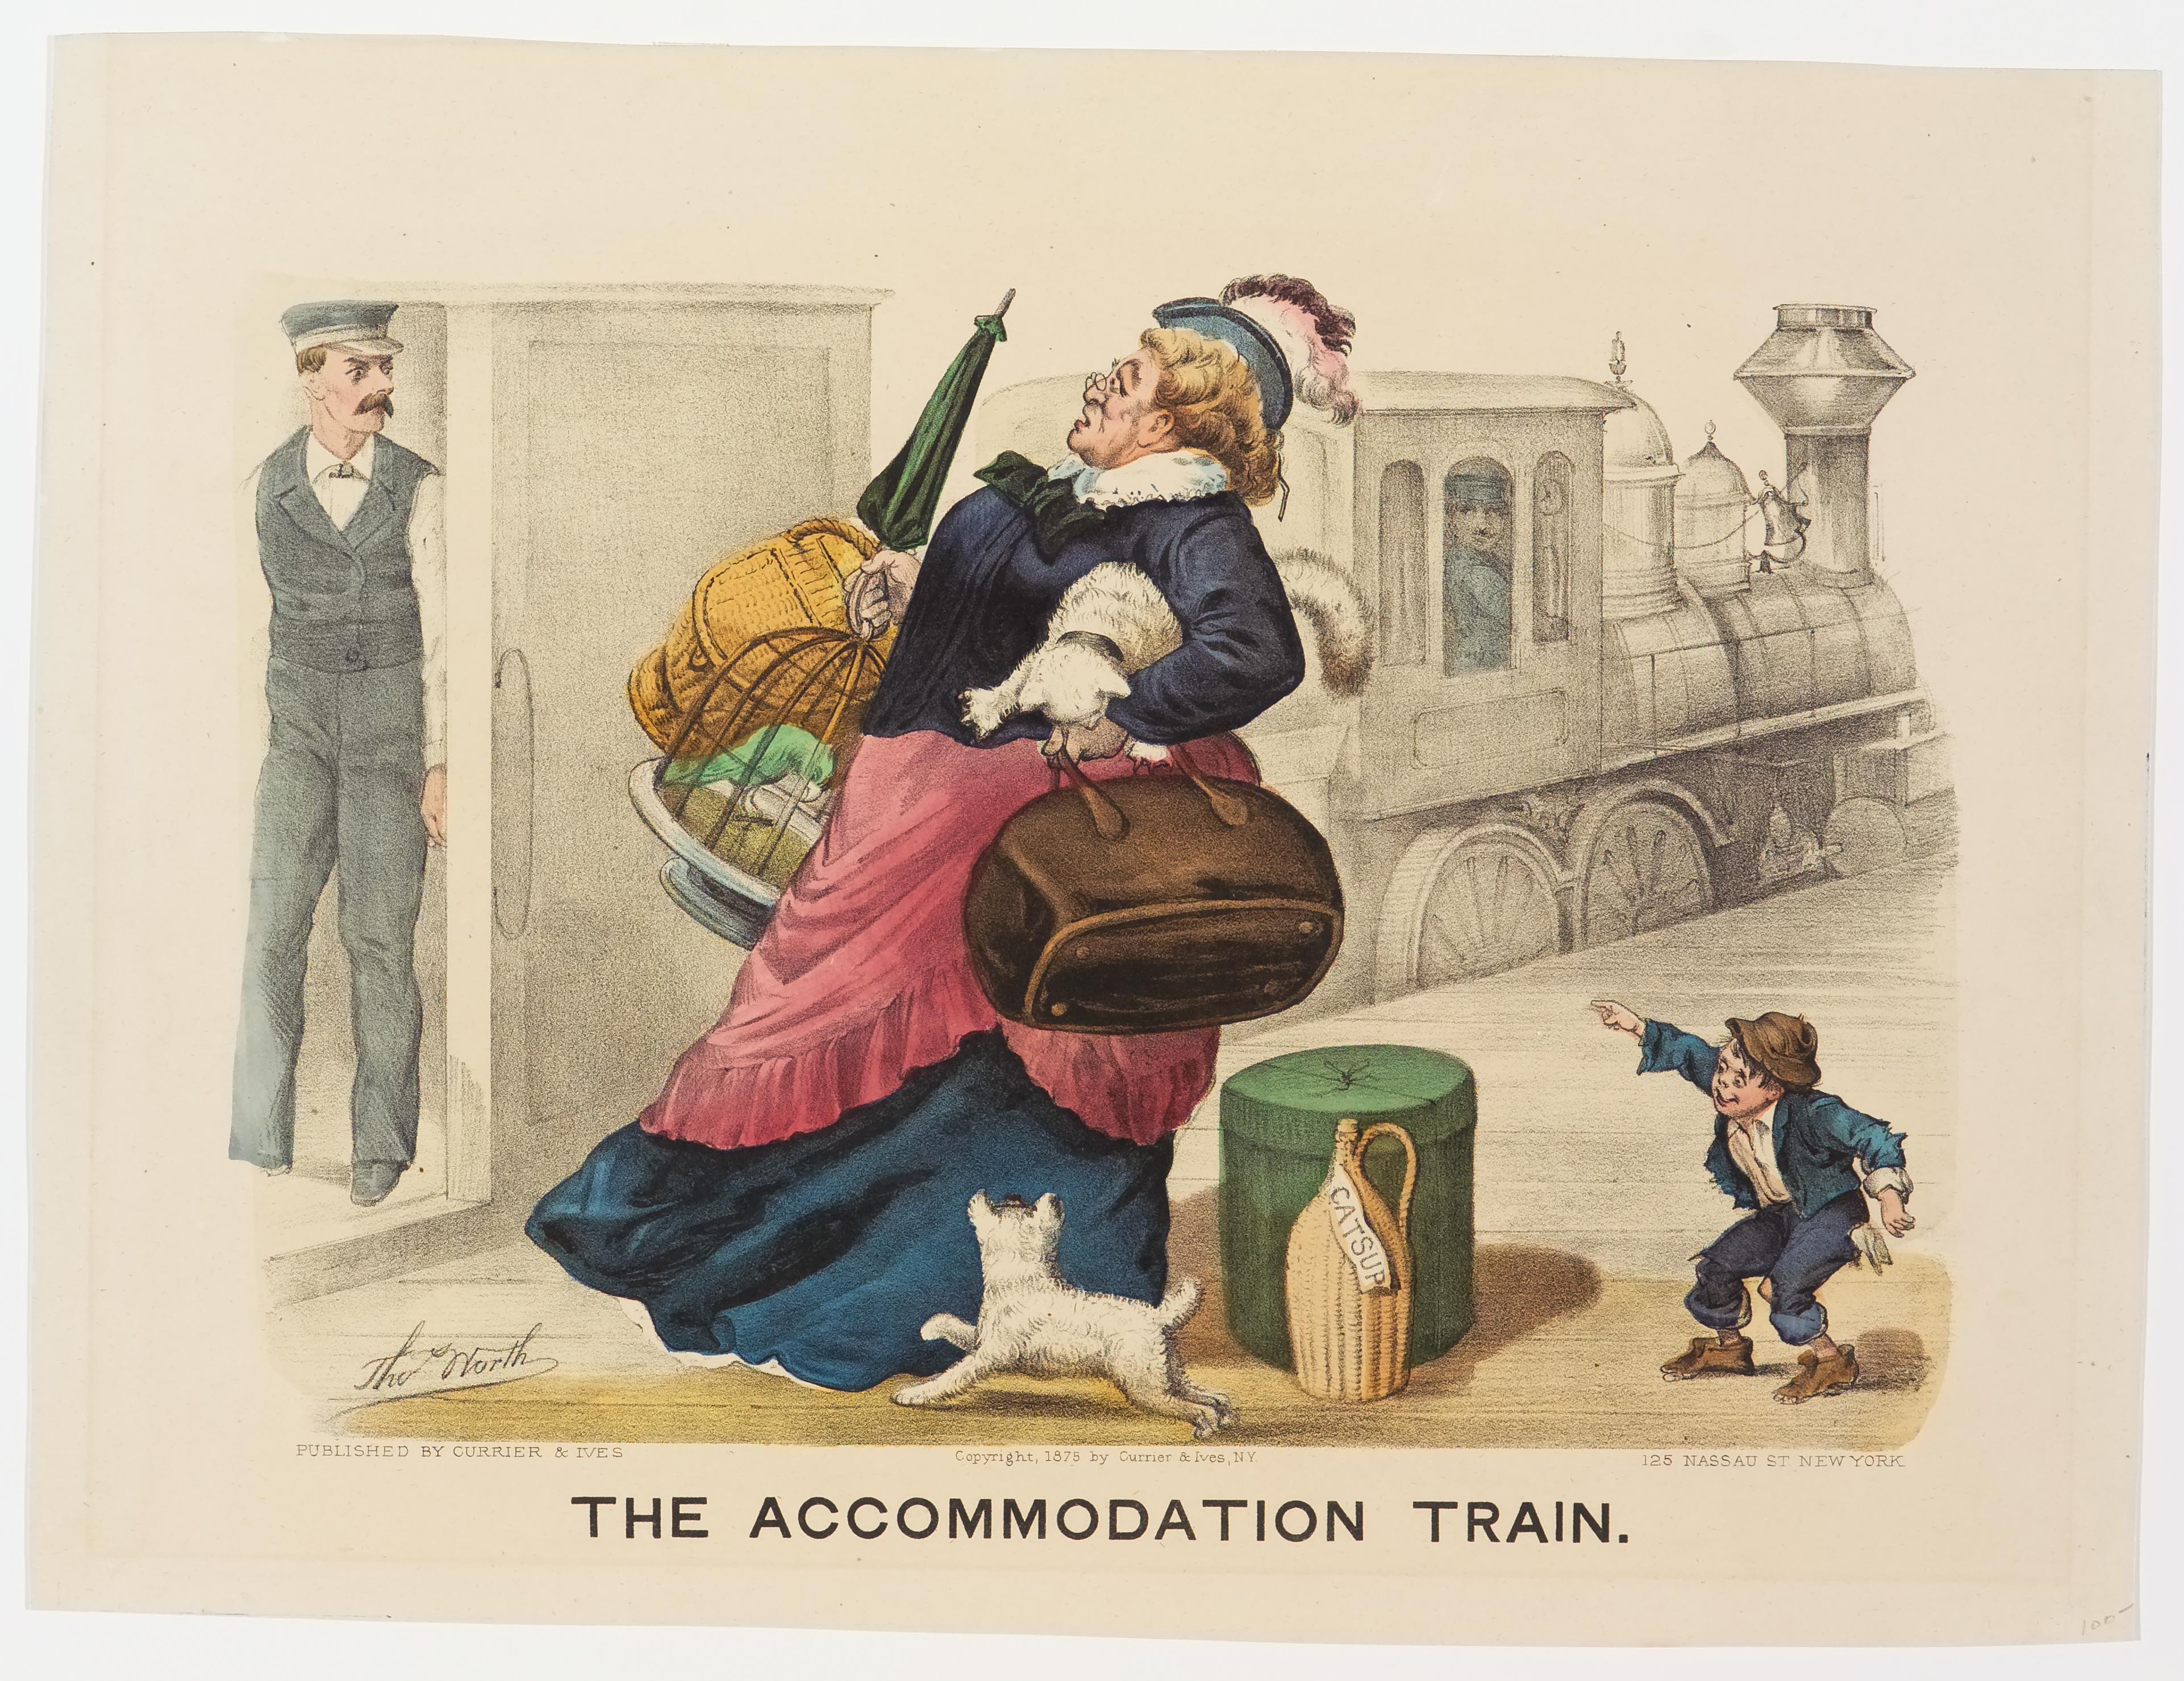 Porter standing in doorway of train at left looking at woman loaded with luggage and a cat and a dog approaching train